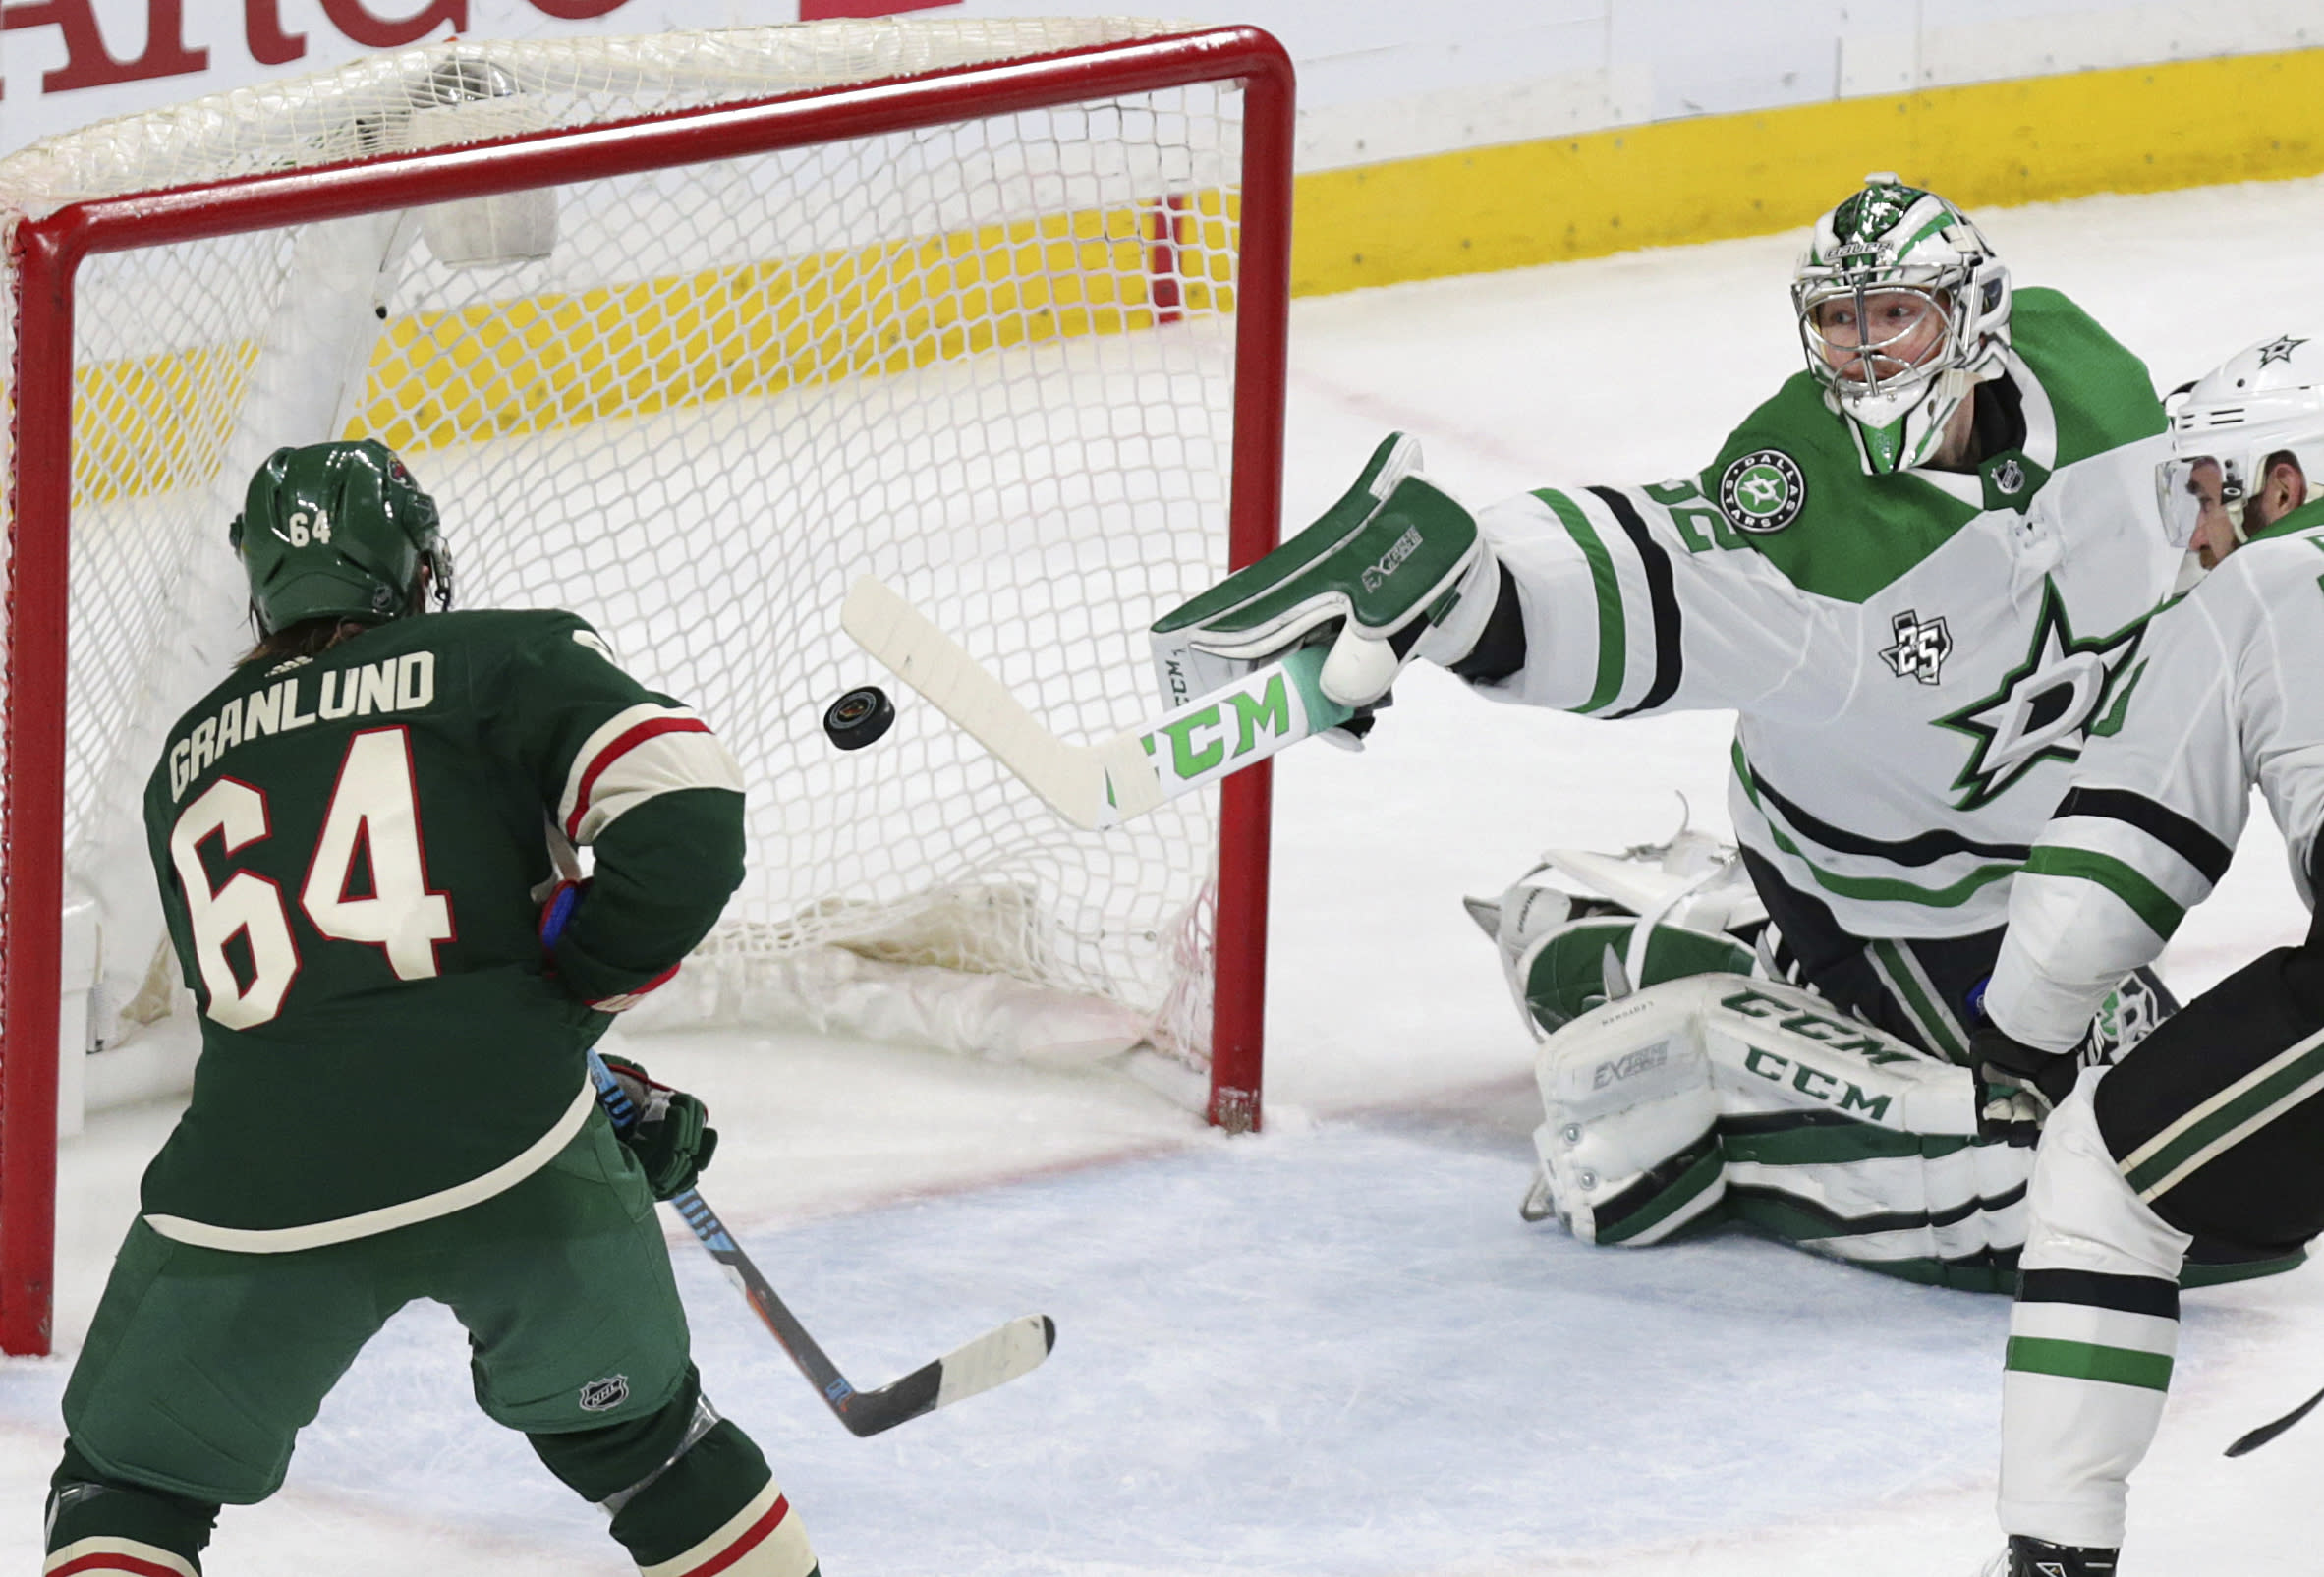 Dumba's sizzling 2nd period leads Wild past Stars 5-2